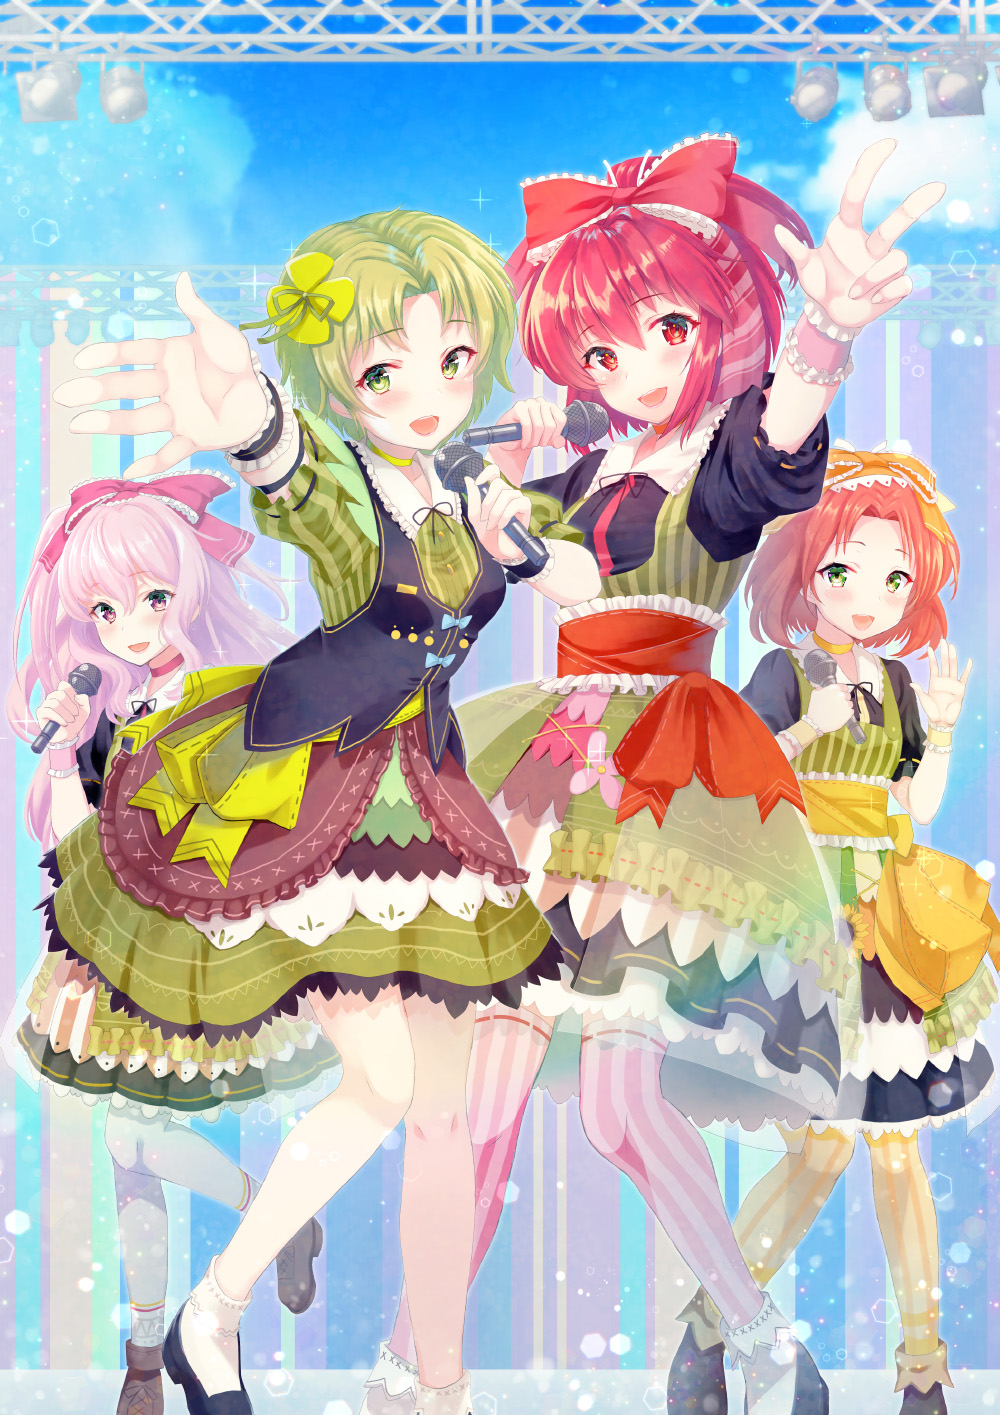 4girls bangs black_vest bow clover_hair_ornament copyright_request dress green_dress green_eyes green_hair hair_bow hair_ornament hands_up highres holding holding_microphone idol indoors long_hair microphone multiple_girls official_art open_mouth orange_bow parted_bangs pink_bow pink_legwear red_bow red_eyes redhead see-through socks stage standing striped striped_legwear thigh-highs v vesper_(pixiv3568) vest white_legwear wristband yellow_legwear